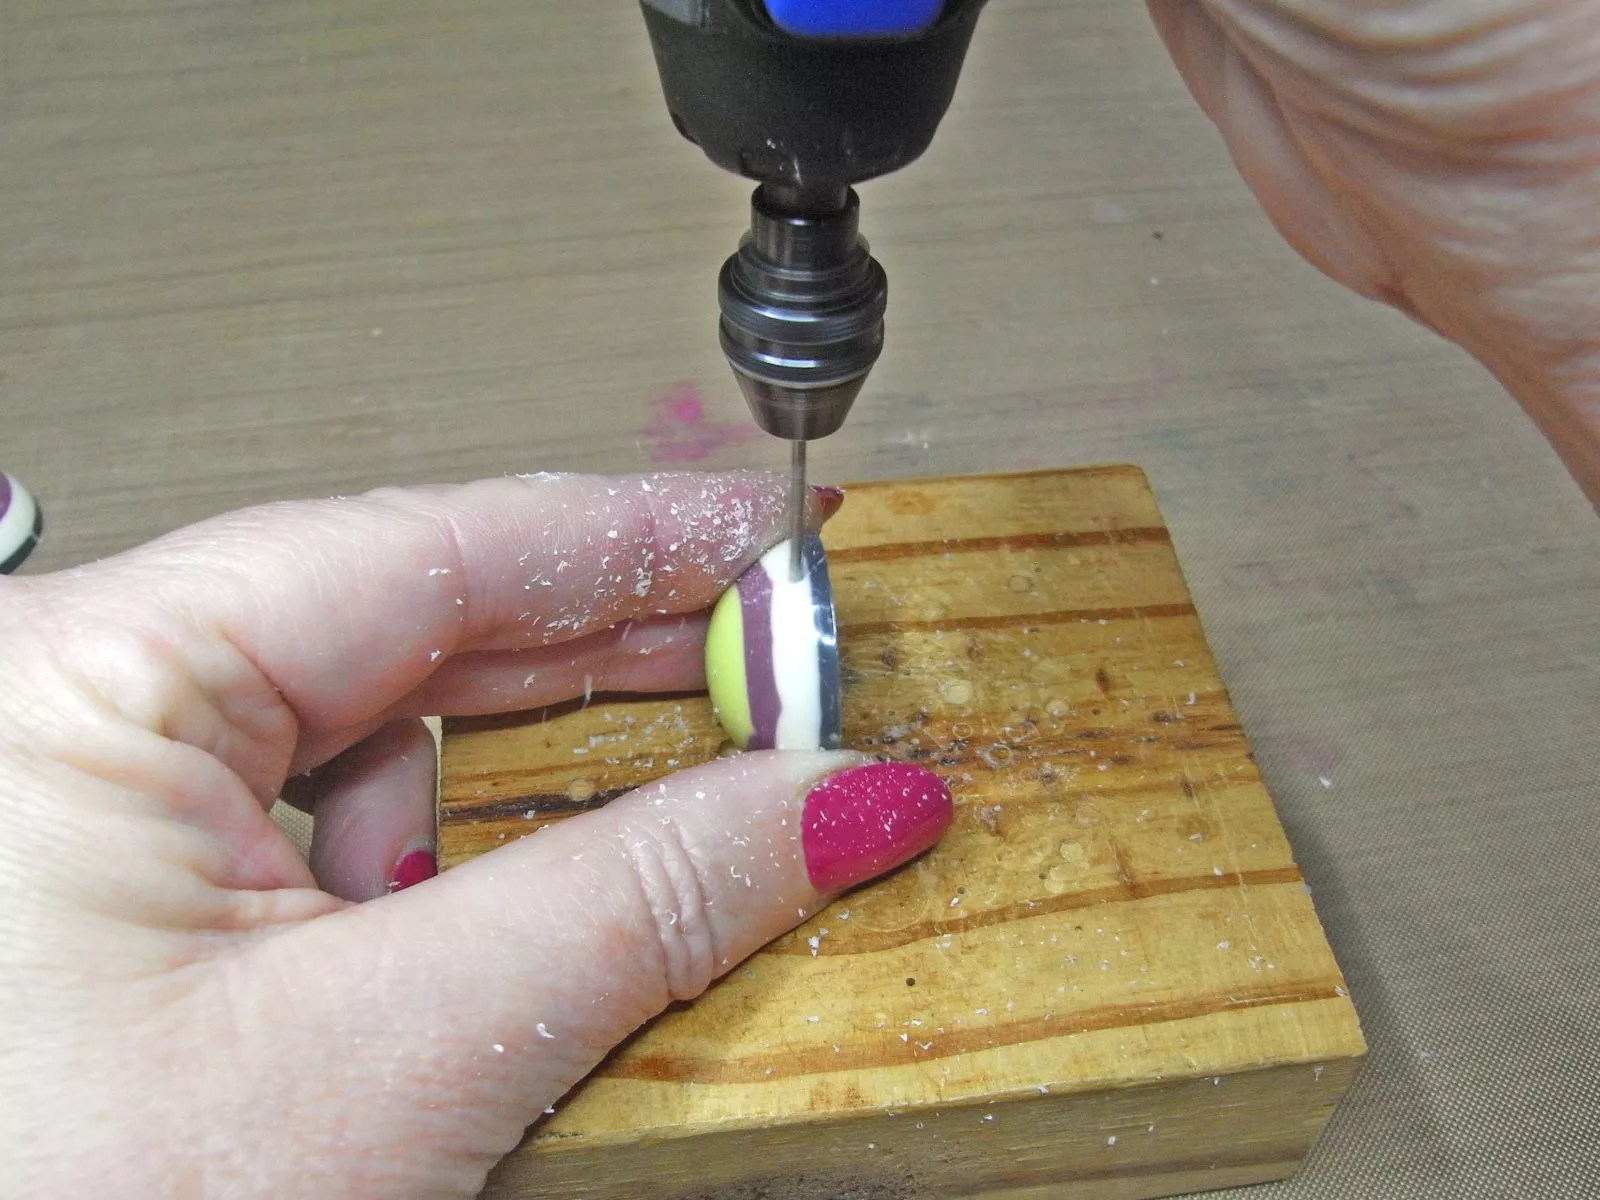 drilling a hole in resin